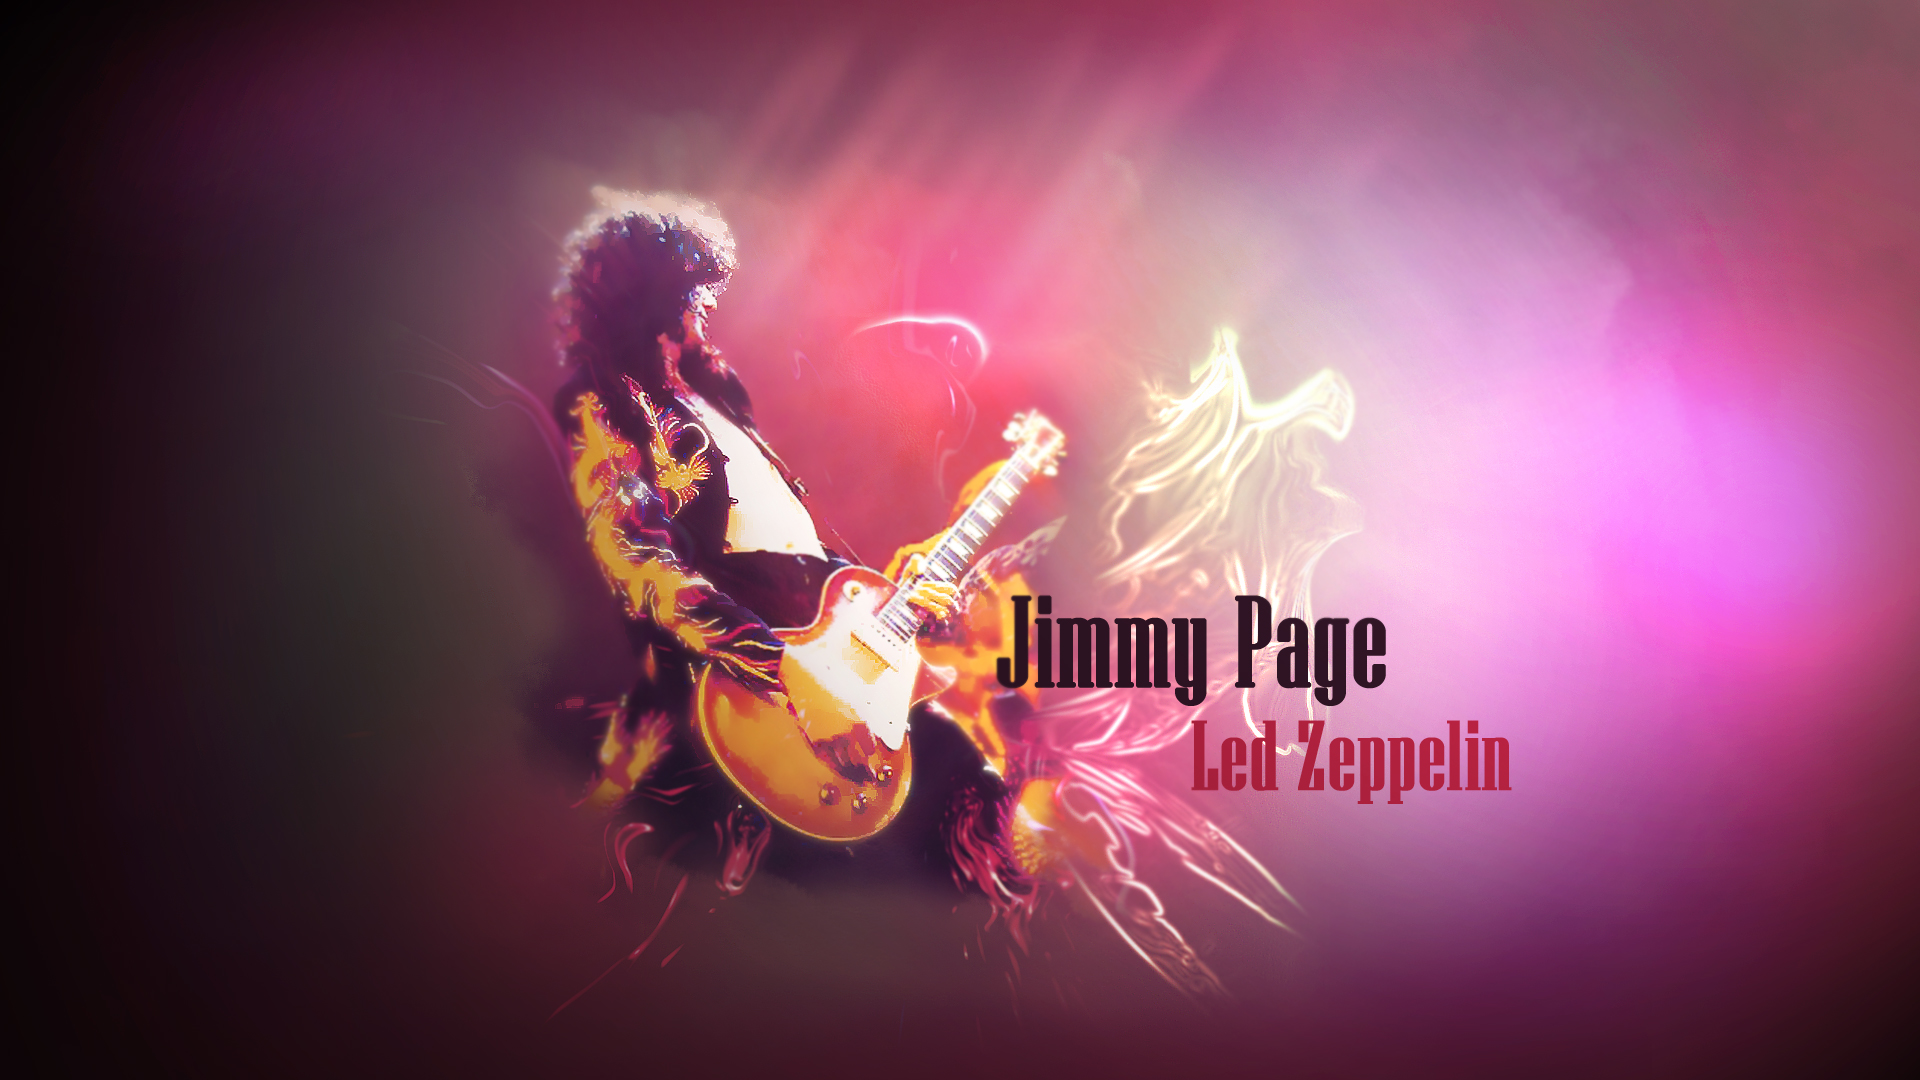 Jimmy Page Images Jimmy Page Hd Wallpaper And Background